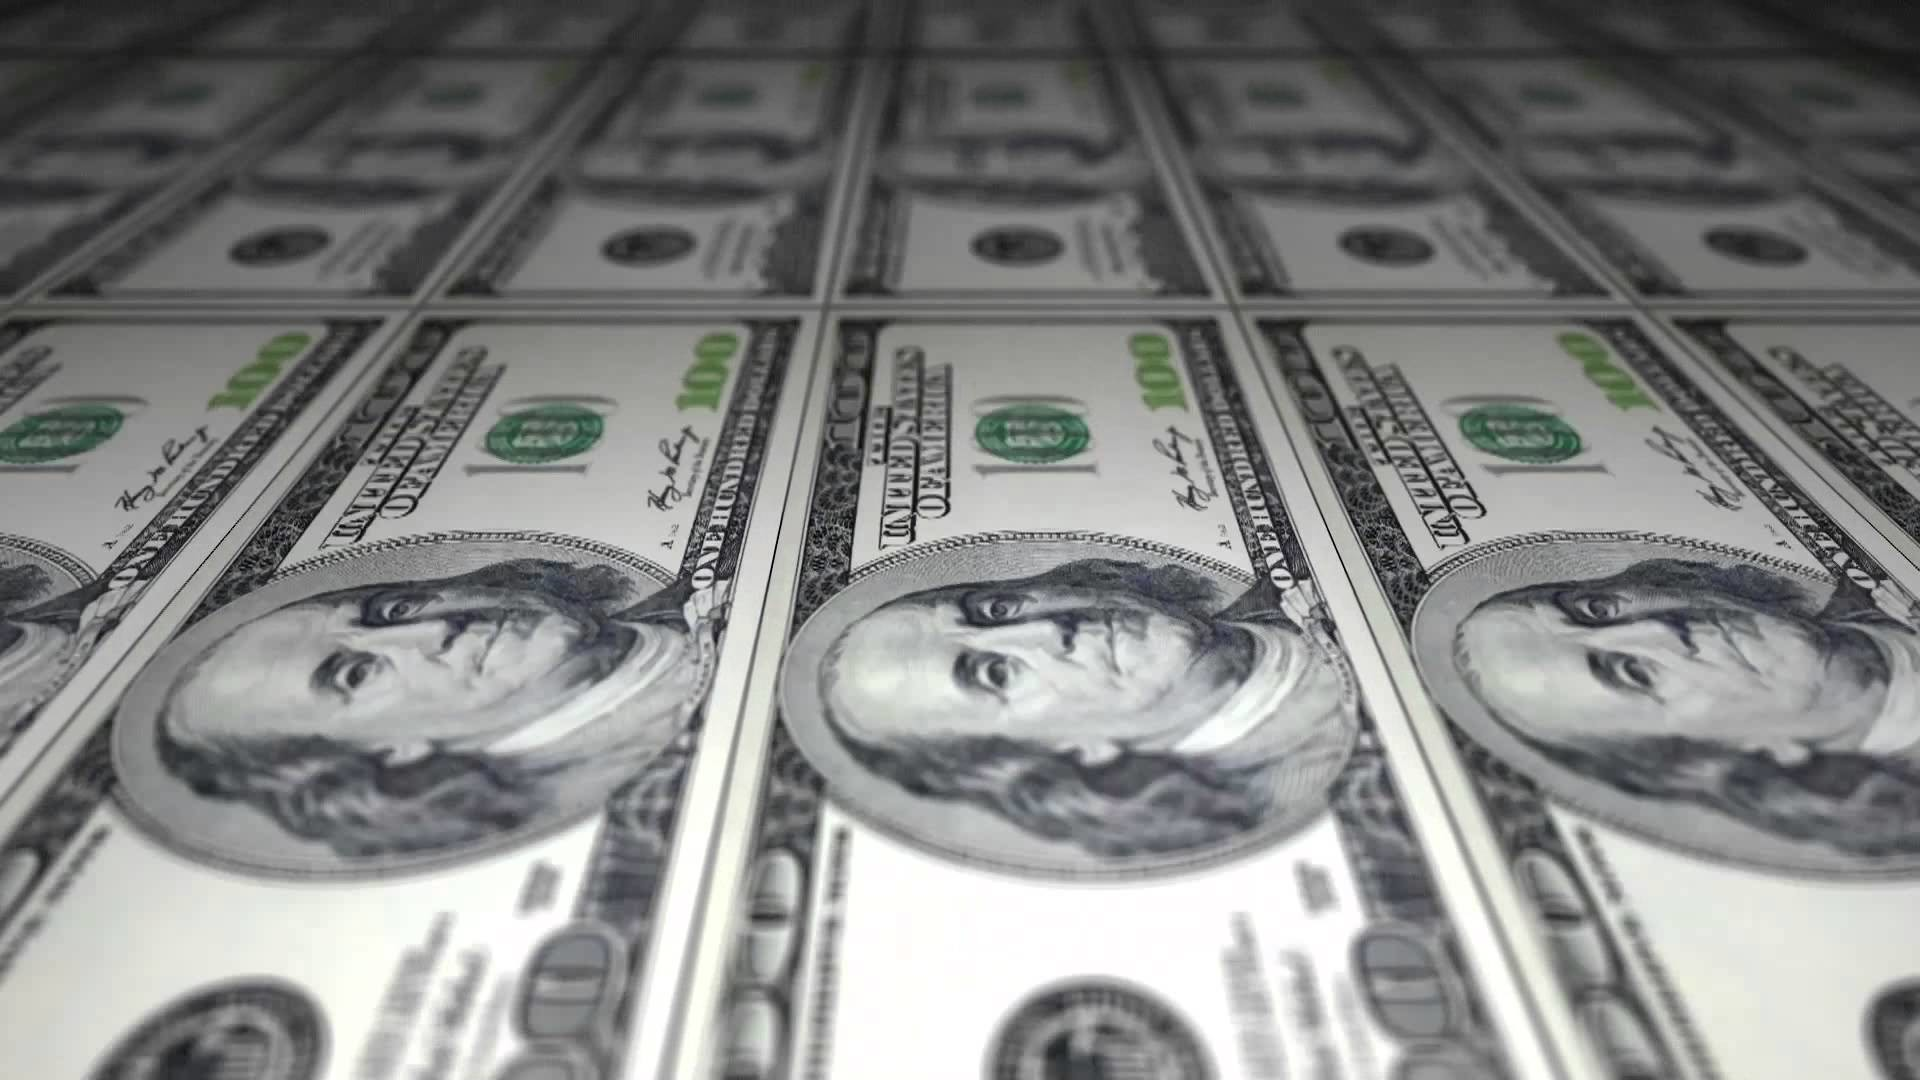 1920x1080 Free Stock Video Download - Printing Dollar Bills - 100 US Dollar Bills -  YouTube